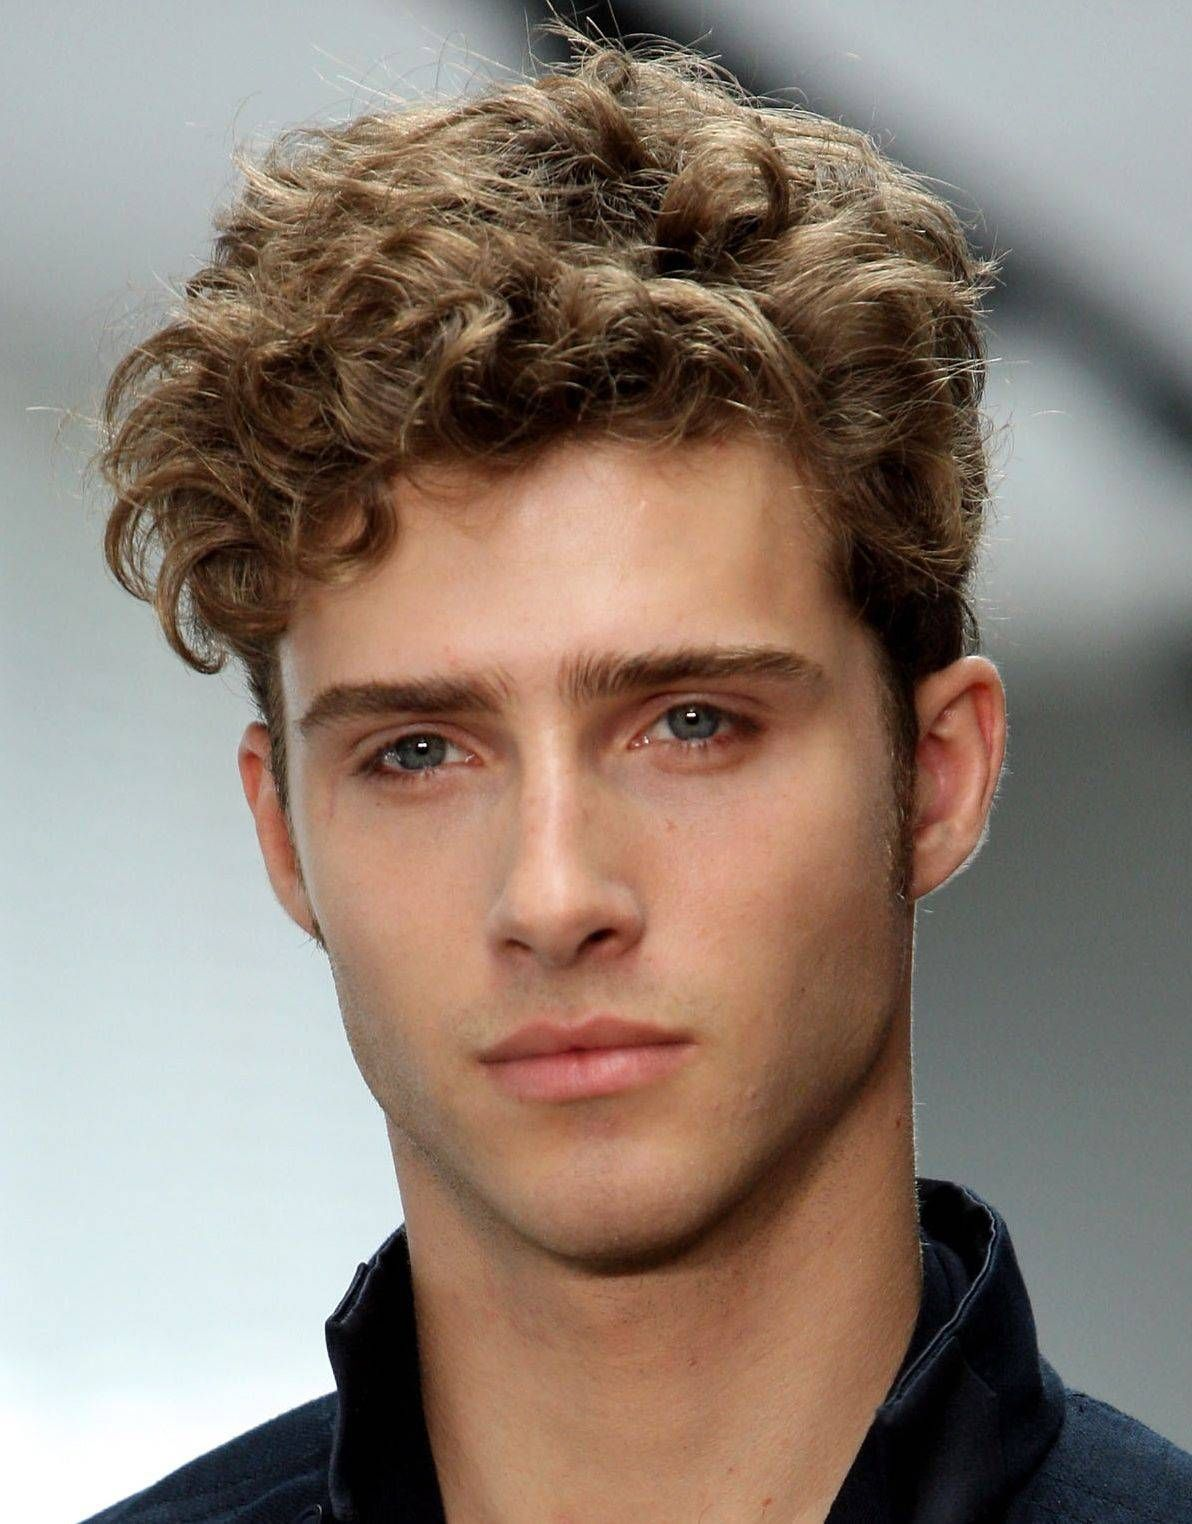 Hairstyle For Curly Hair Male Amusing Hairstyles For Men